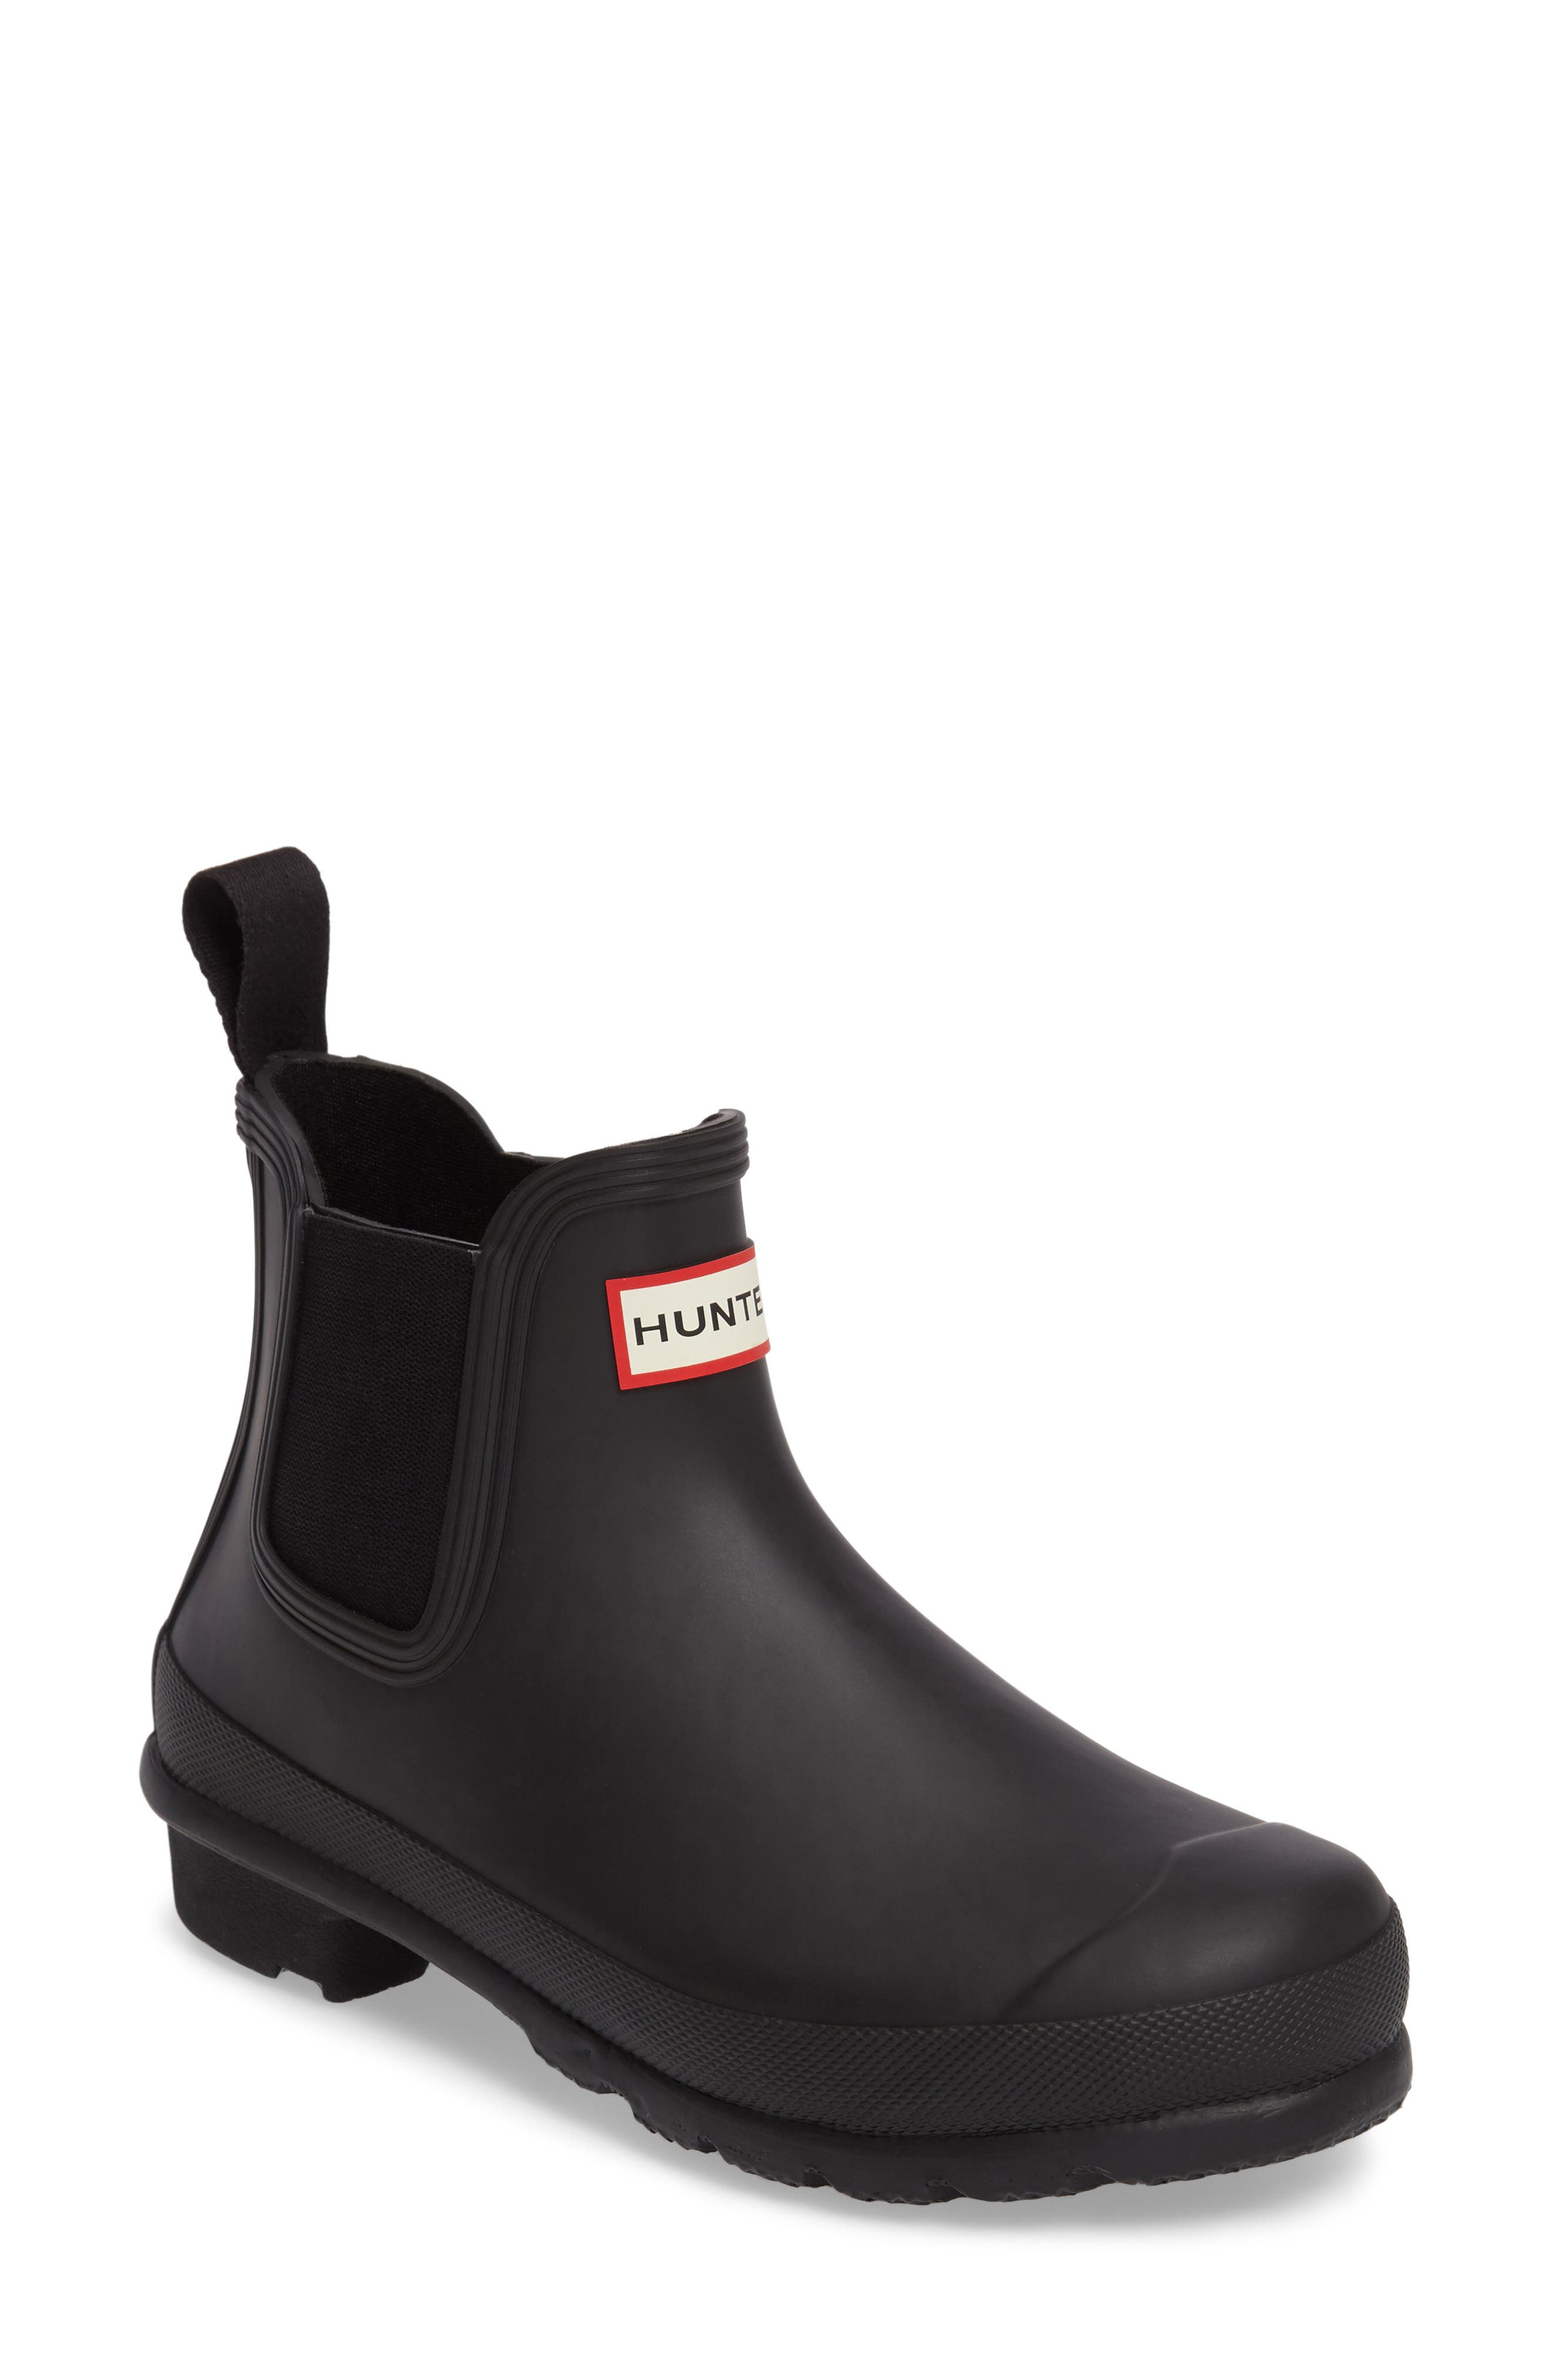 Original Waterproof Chelsea Rain Boot,                             Main thumbnail 1, color,                             BLACK MATTE